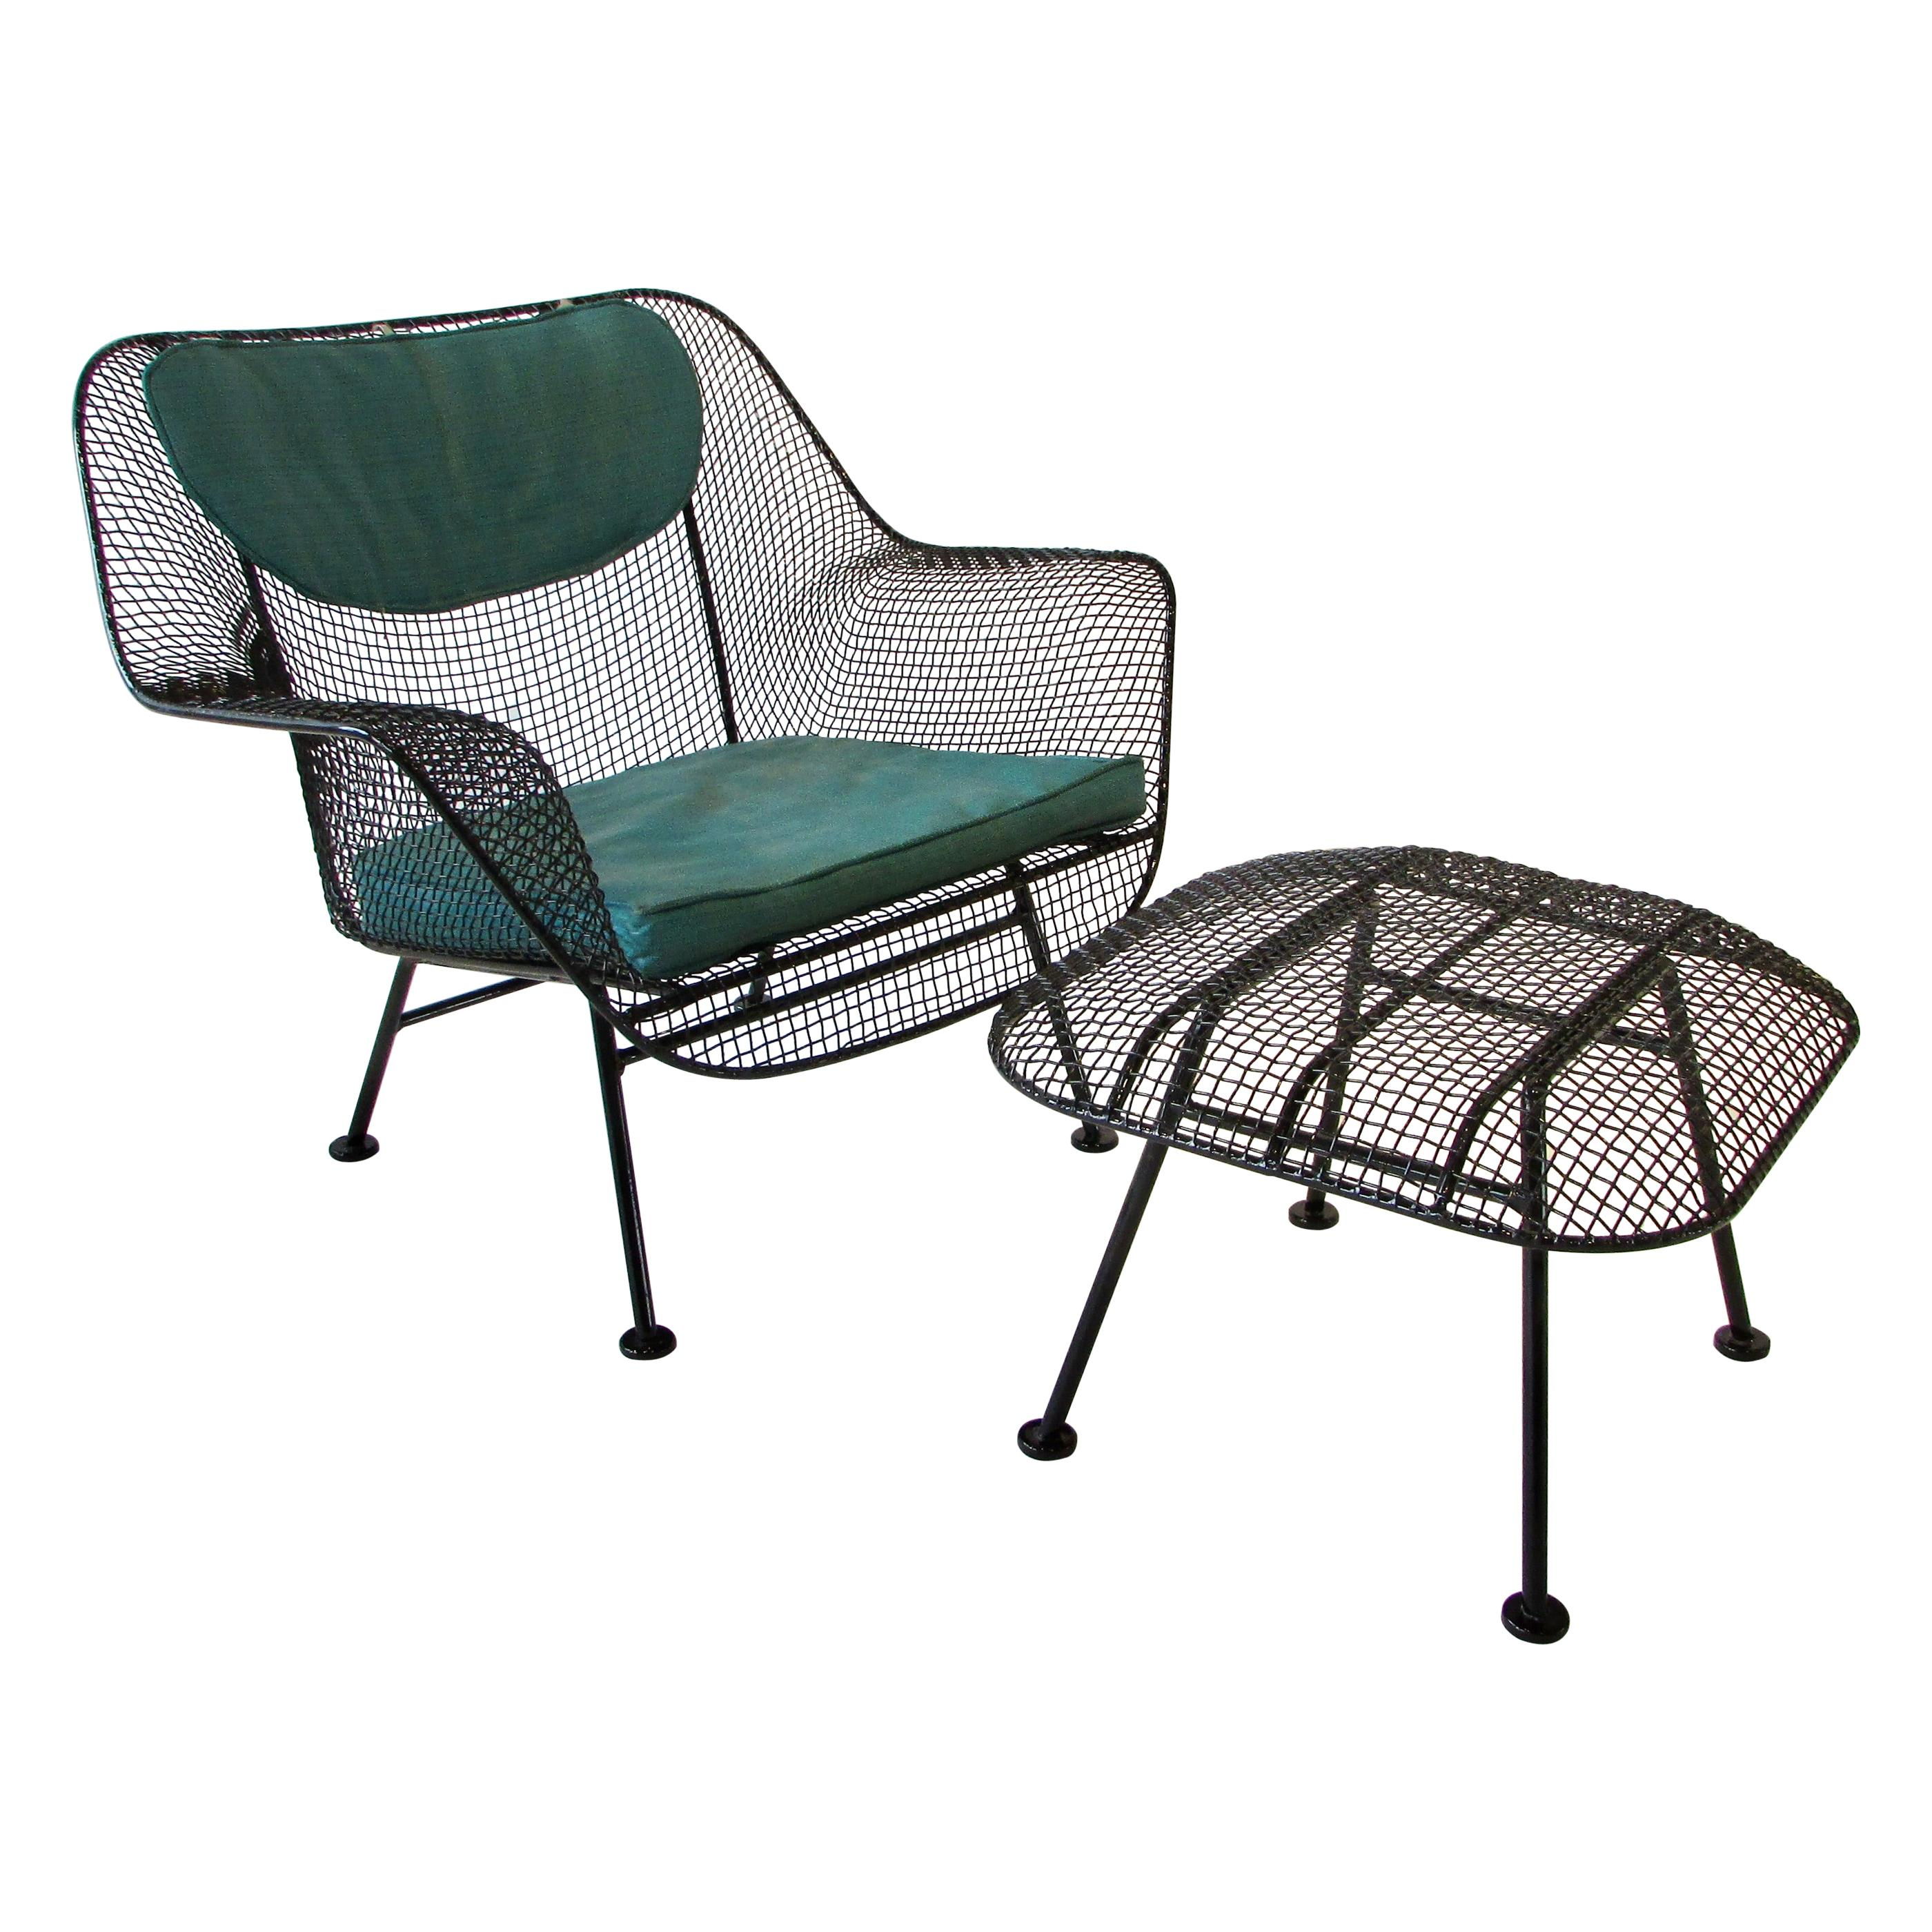 Large Woodard Sculptura Wrought Iron with Steel Mesh Lounge Chair and Ottoman